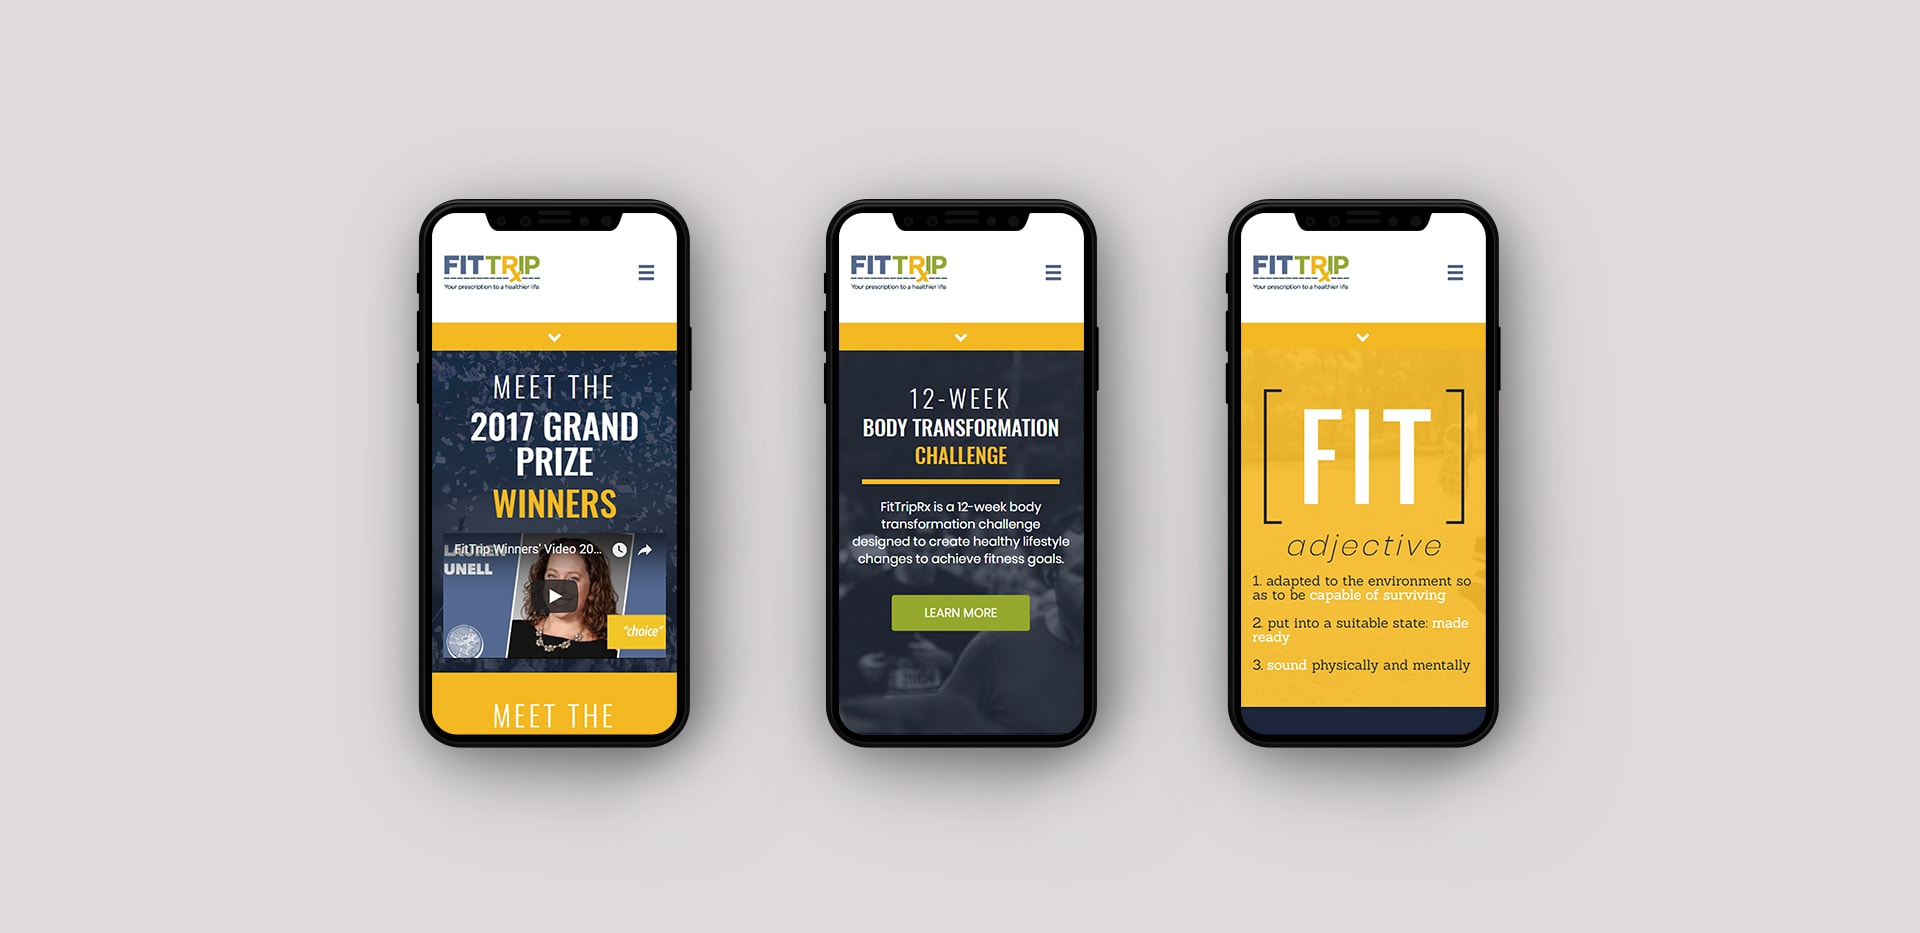 Mobile phone view of FitTripRx website by Chris Nunn, design strategist for Sideways8 Interactive, Atlanta, GA